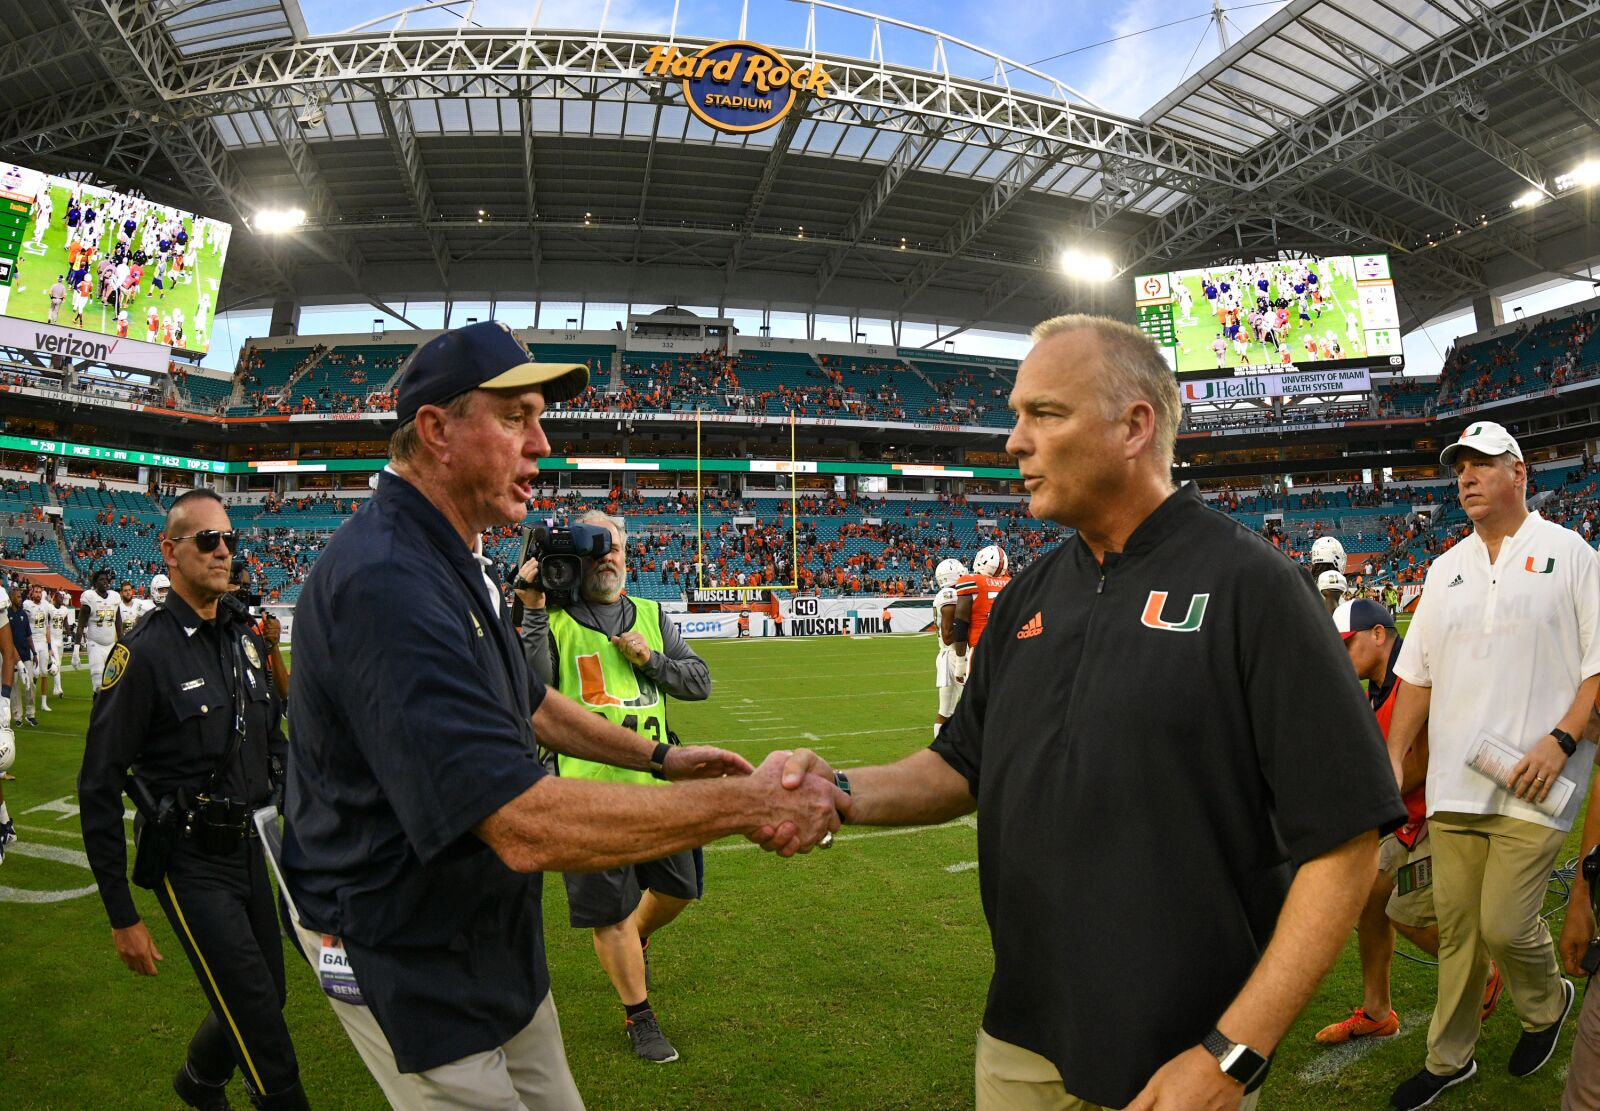 Miami Hurricanes at FIU will be played in November 2019